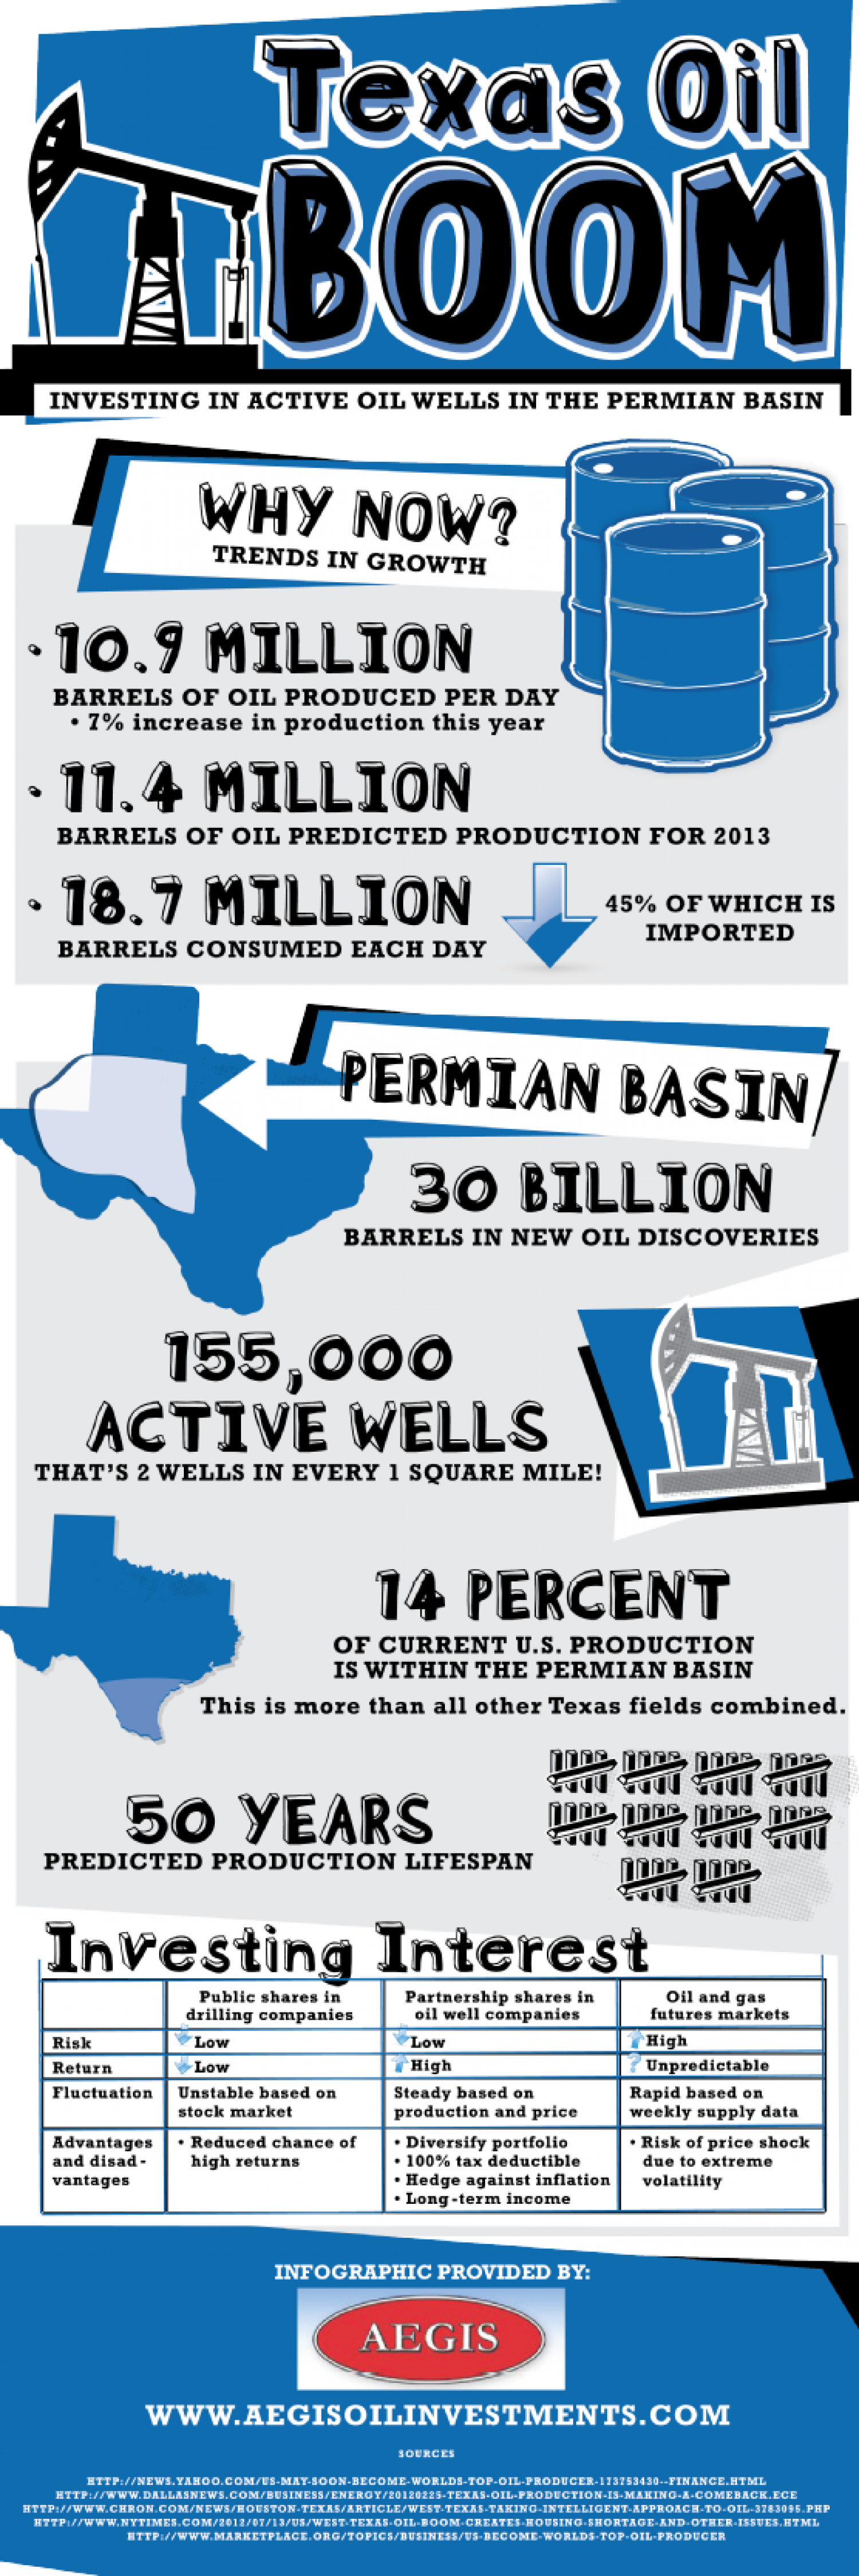 Texas Oil Boom: Investing in Active Oil Wells in the Permian Basin Infographic